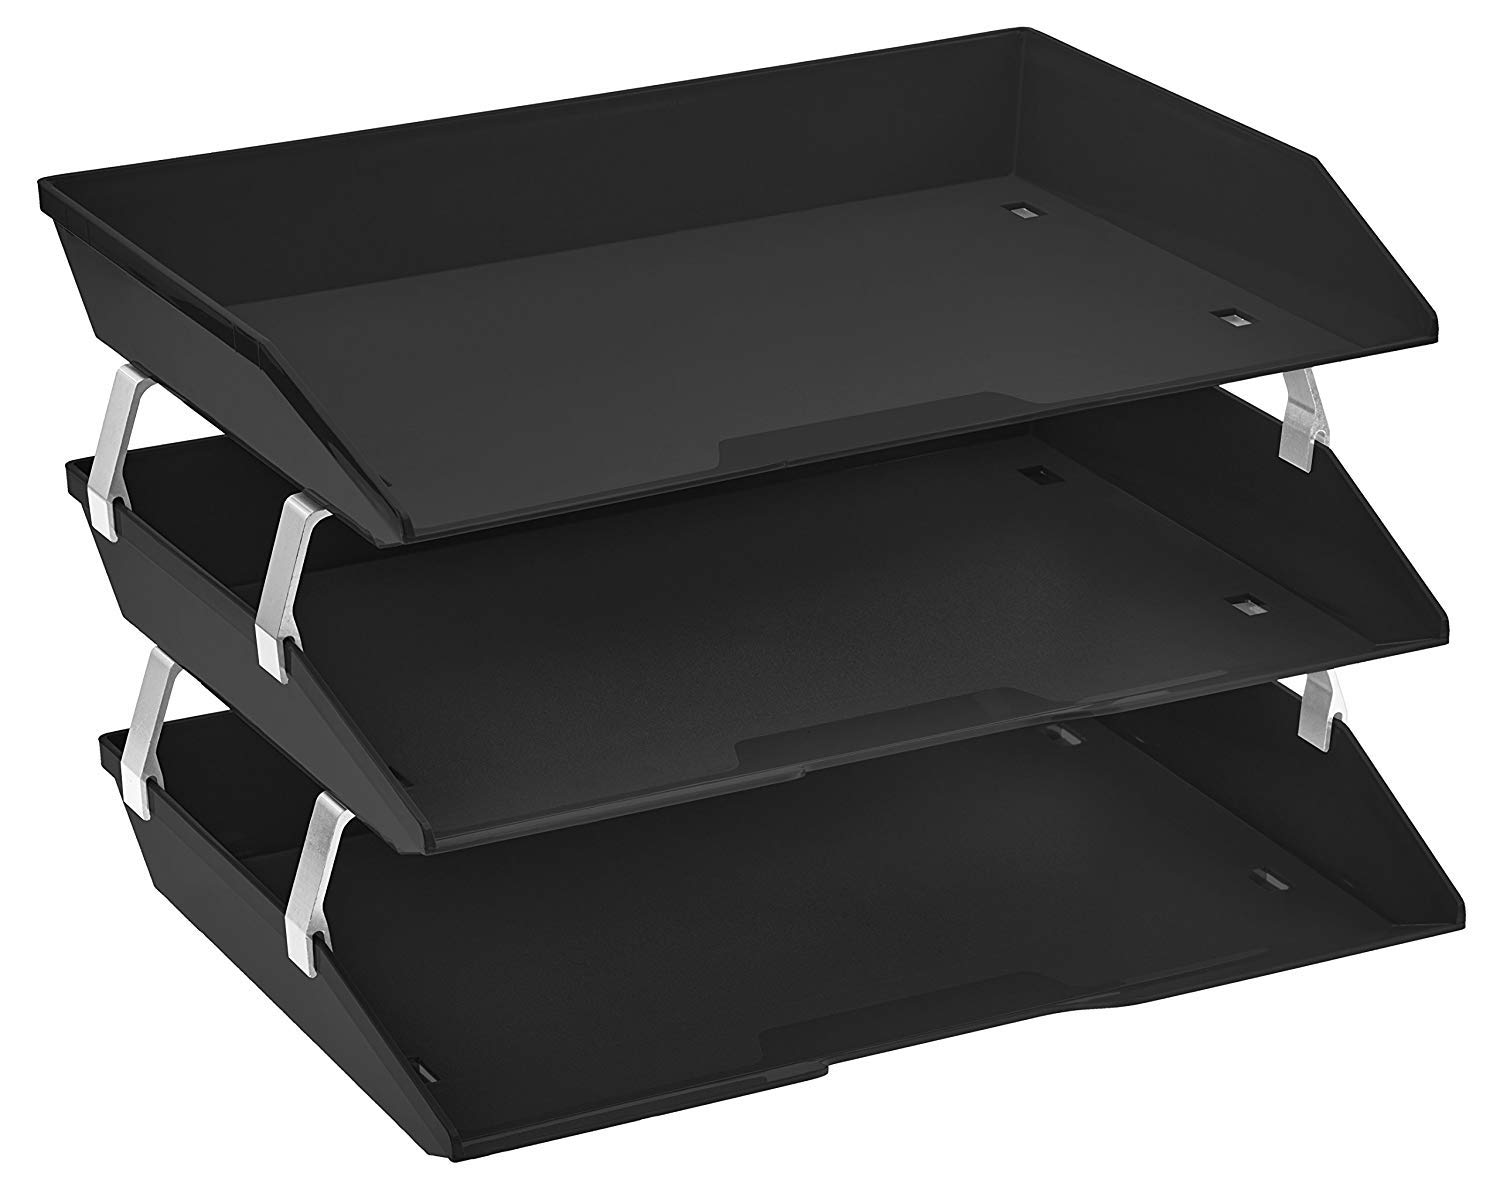 Acrimet Facility 3 Tier Letter Tray Side Load Plastic Desktop File Organizer (Black Color)